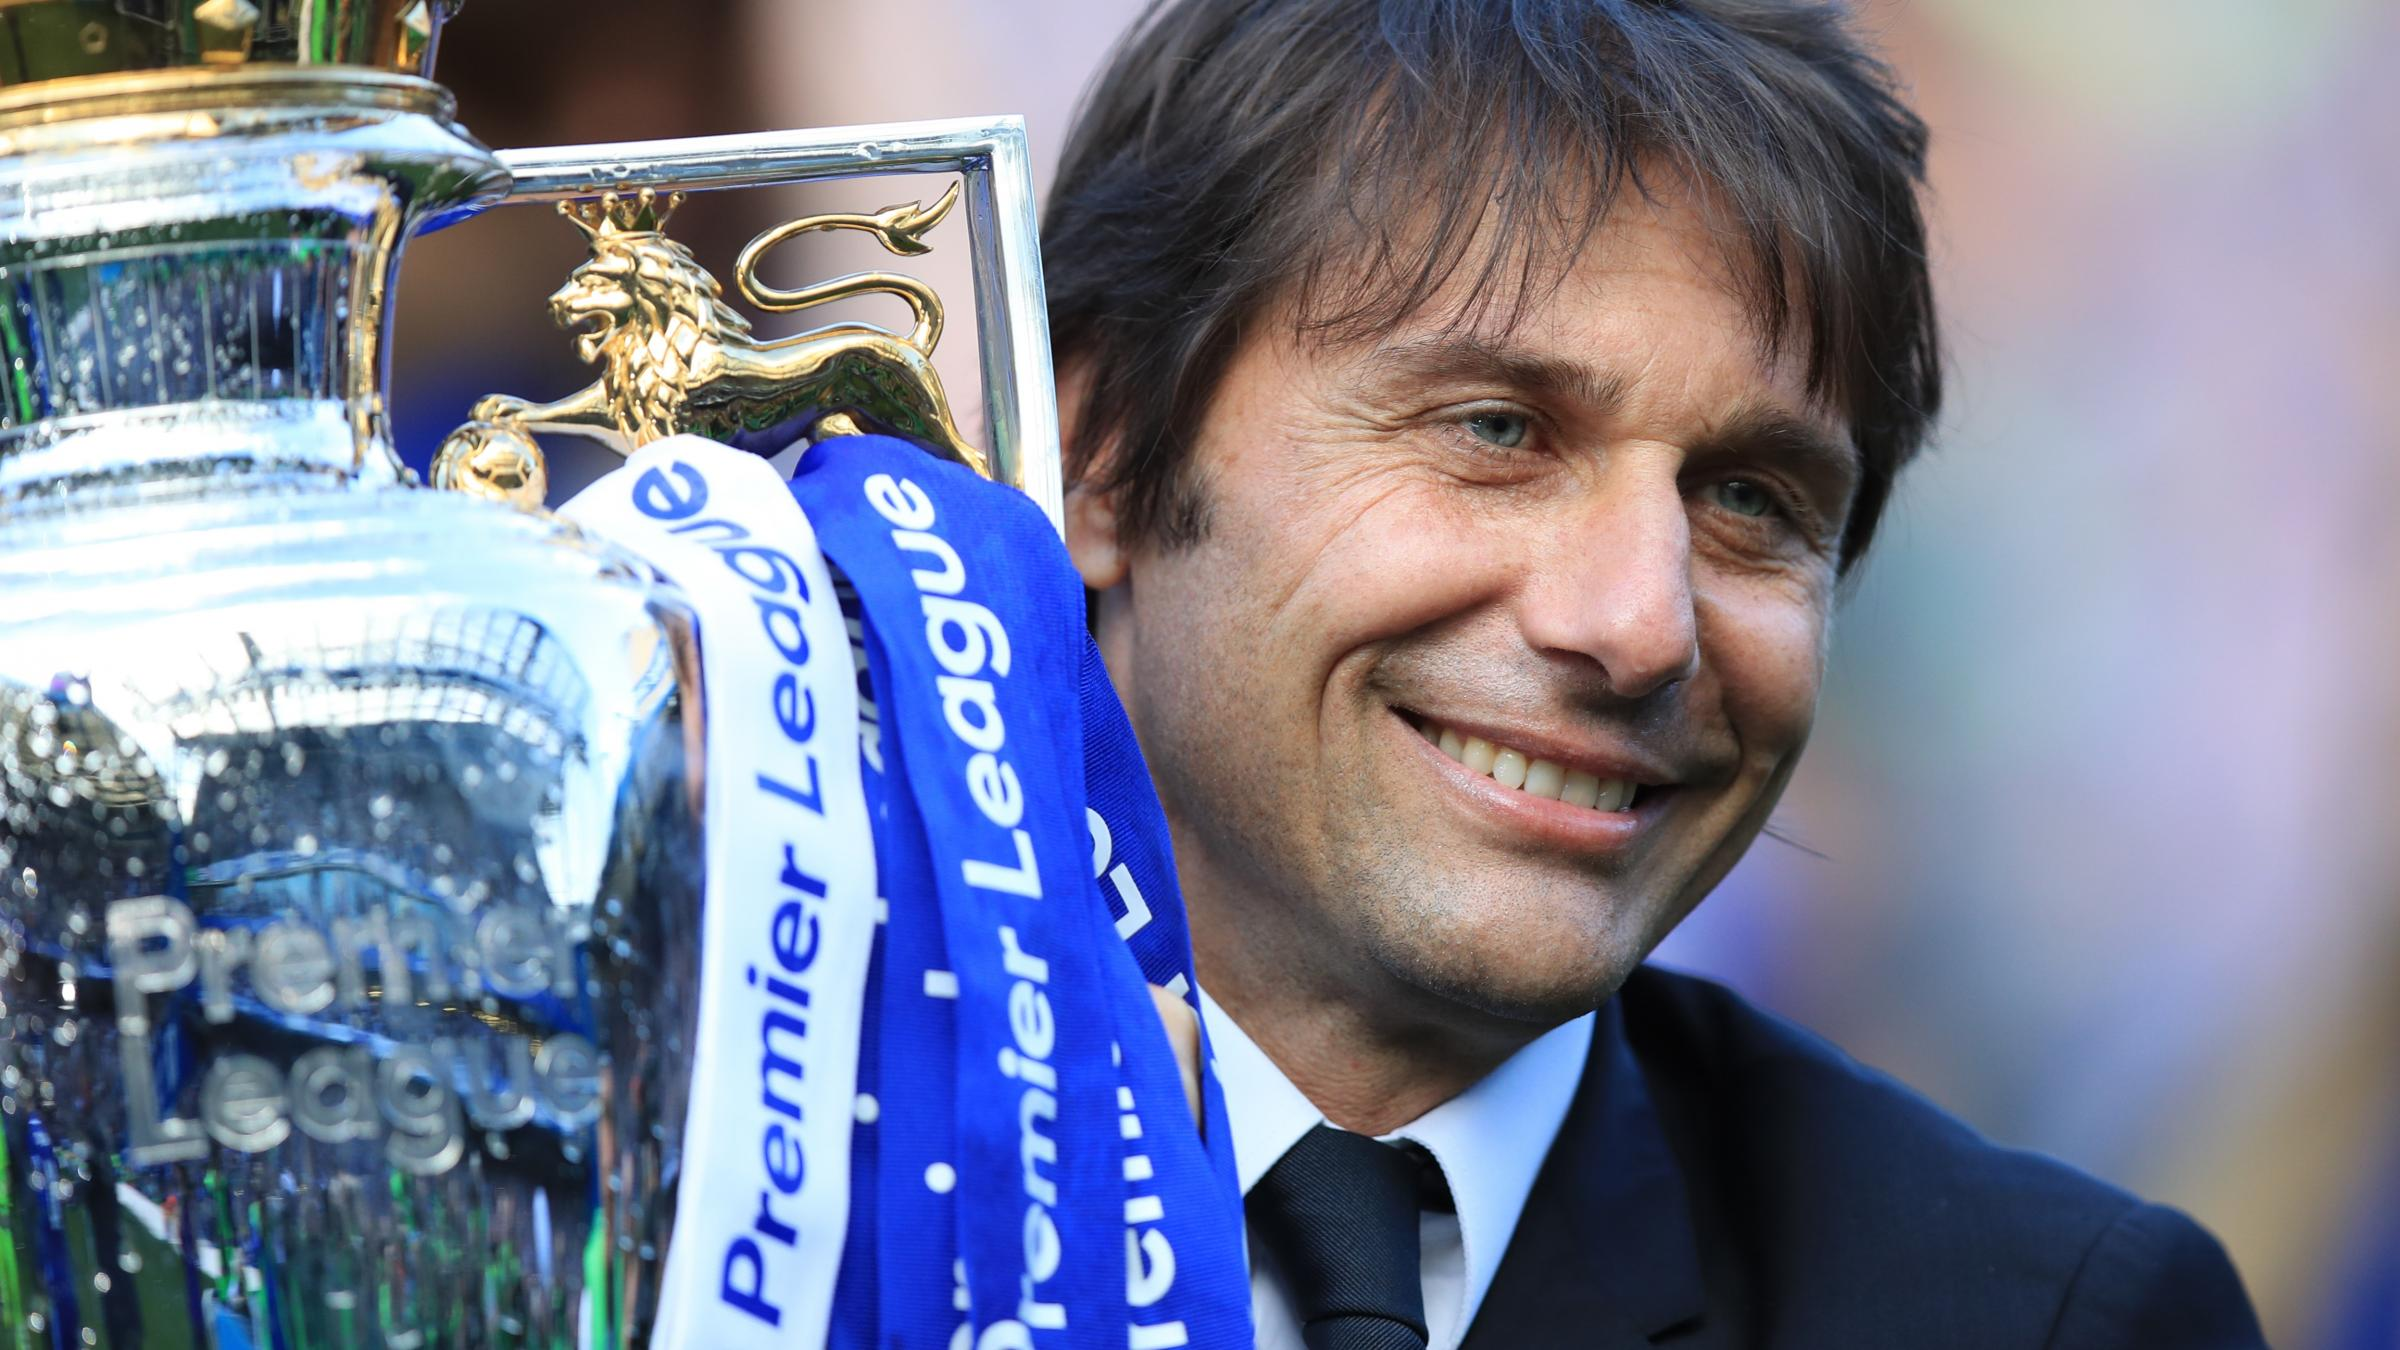 Trouble for champs? Growing tension divides Conte, Chelsea